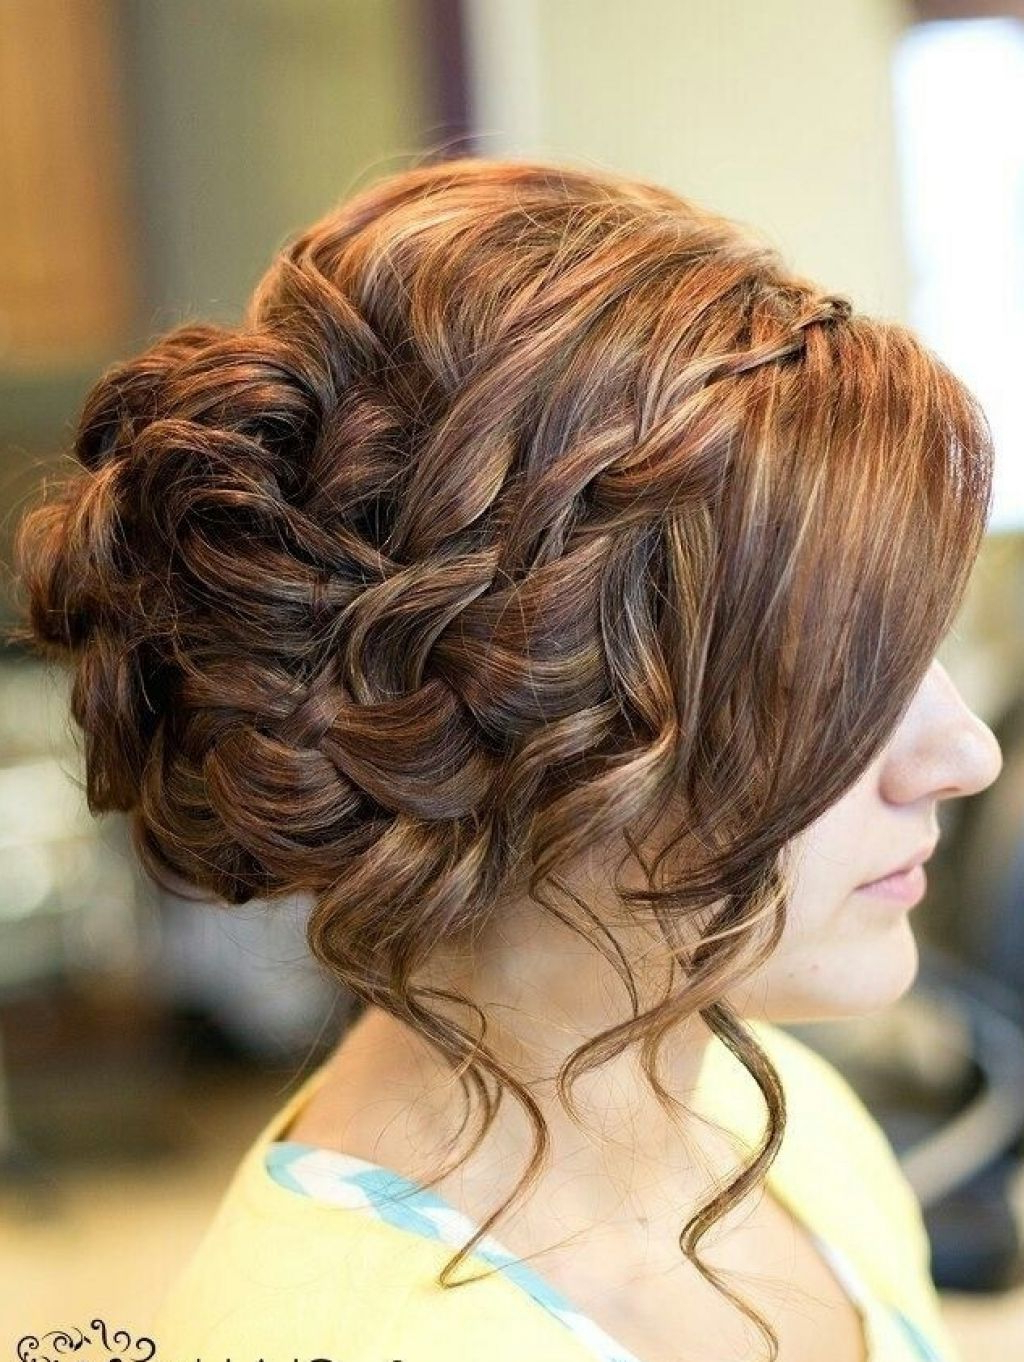 14 Prom Hairstyles For Long Hair That Are Simply Adorable With Popular Braided Chignon Prom Hairstyles (View 1 of 20)